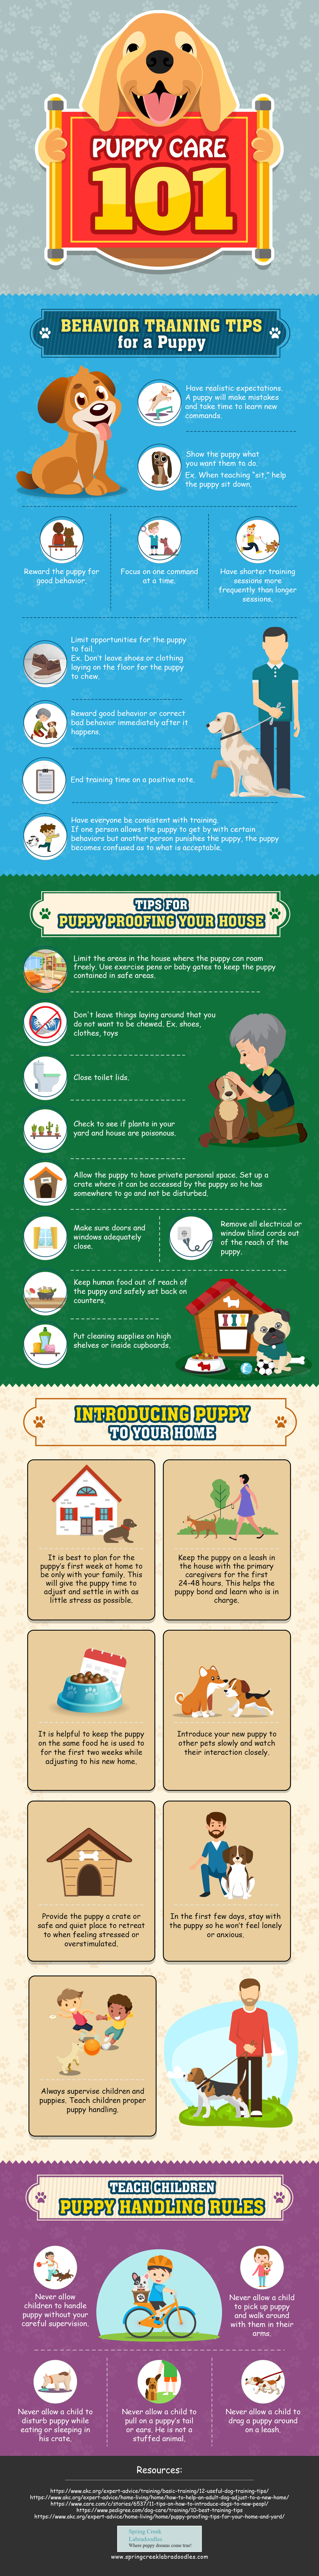 Bringing Up Puppy: Caregiver's Guide - Infographic